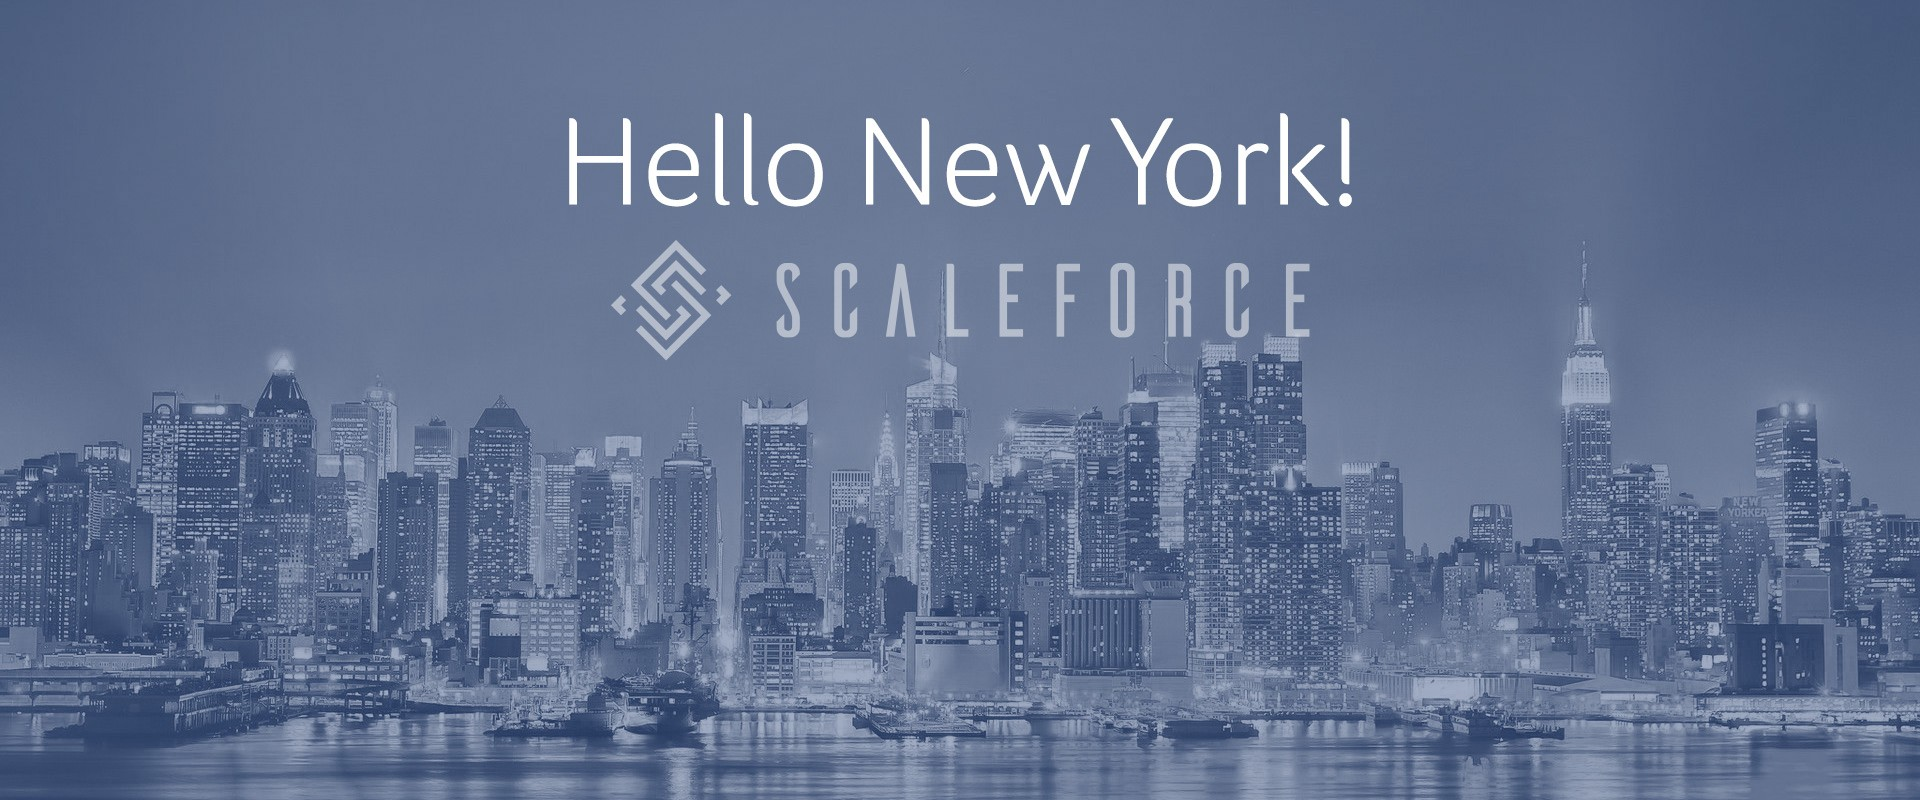 Scaleforce's New York region is now online!